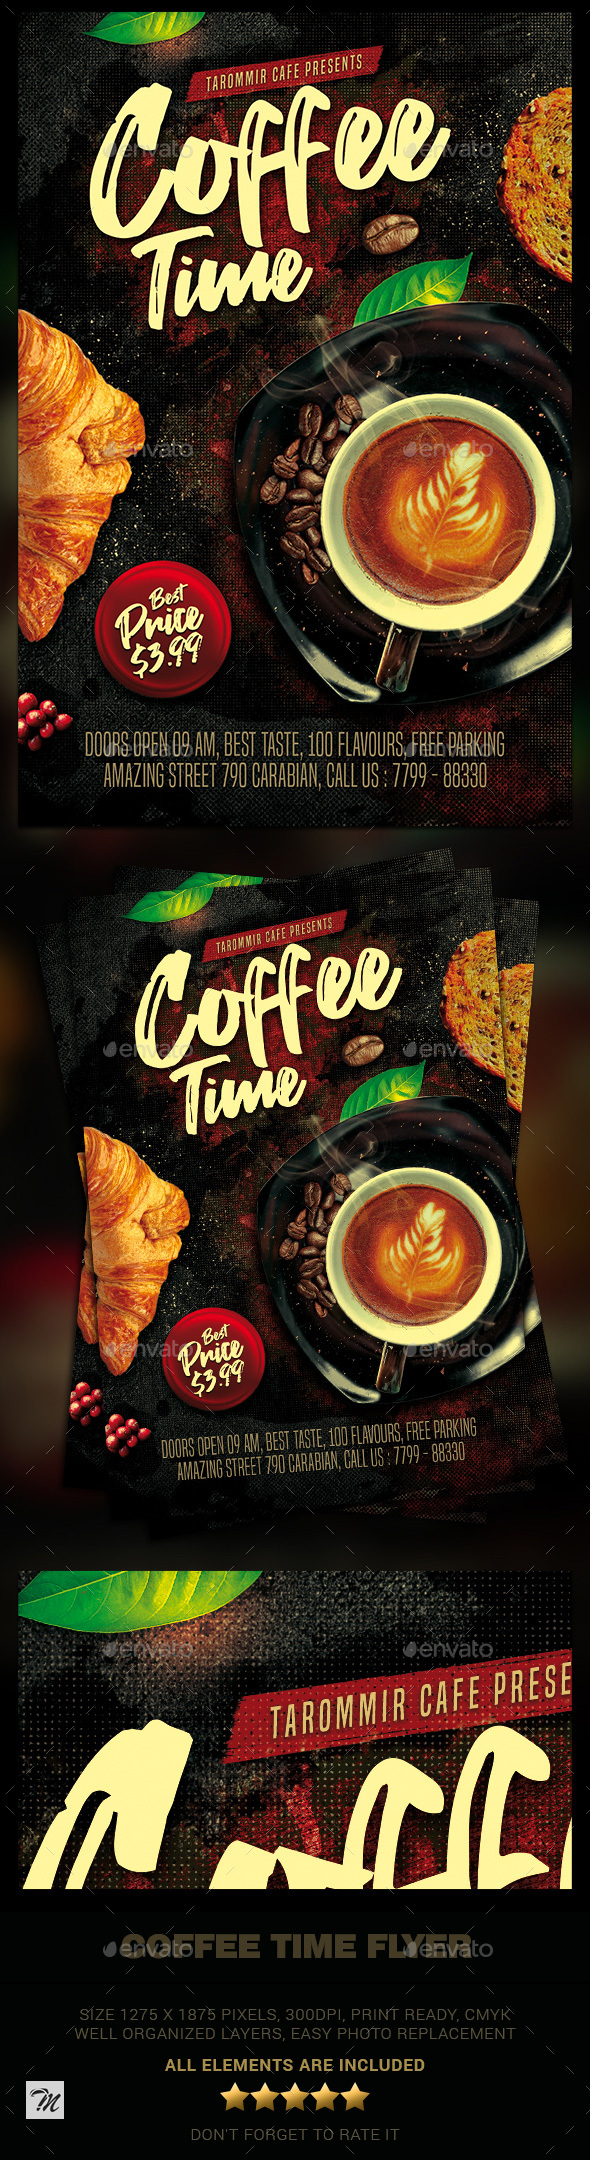 Flyers PSD – Coffee Time Flyer – Download